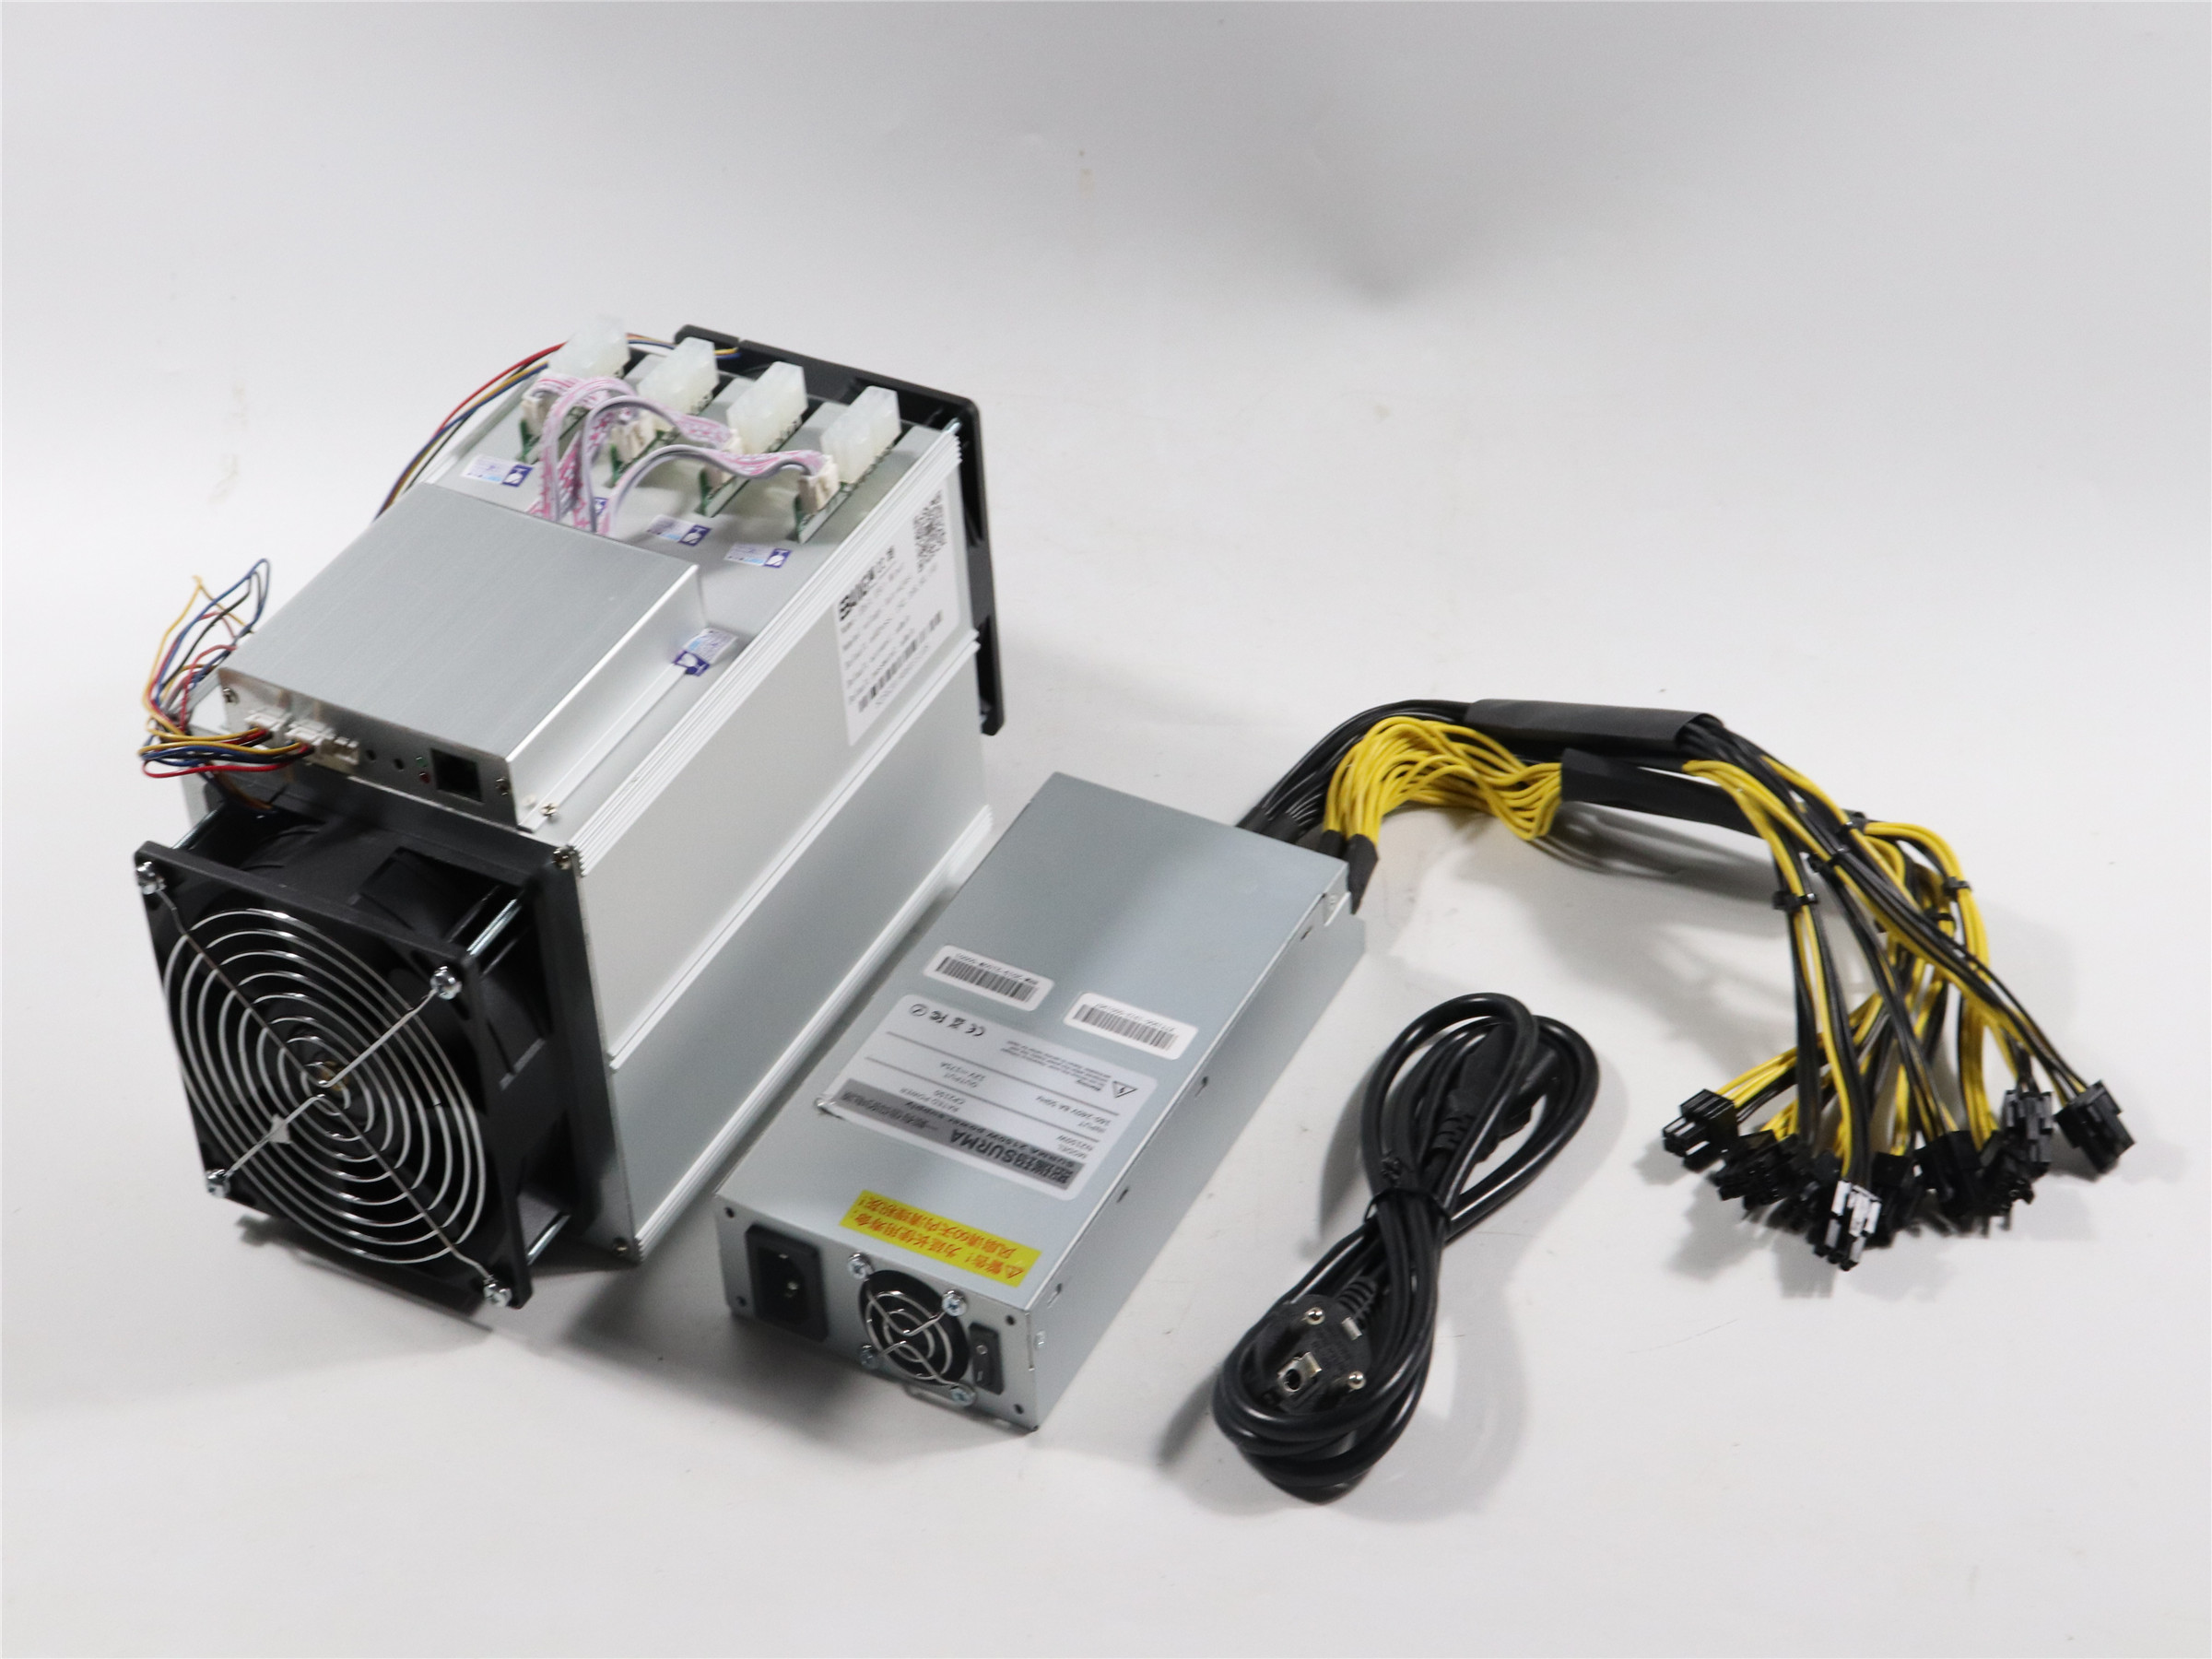 Used Ebit E9i 13.5T With PSU Asic Bitcoin BTC BCH Miner Economic Than Antminer S9 S9j T9+ S11 S15 Z9 Z11 WhatsMiner M3 M3X